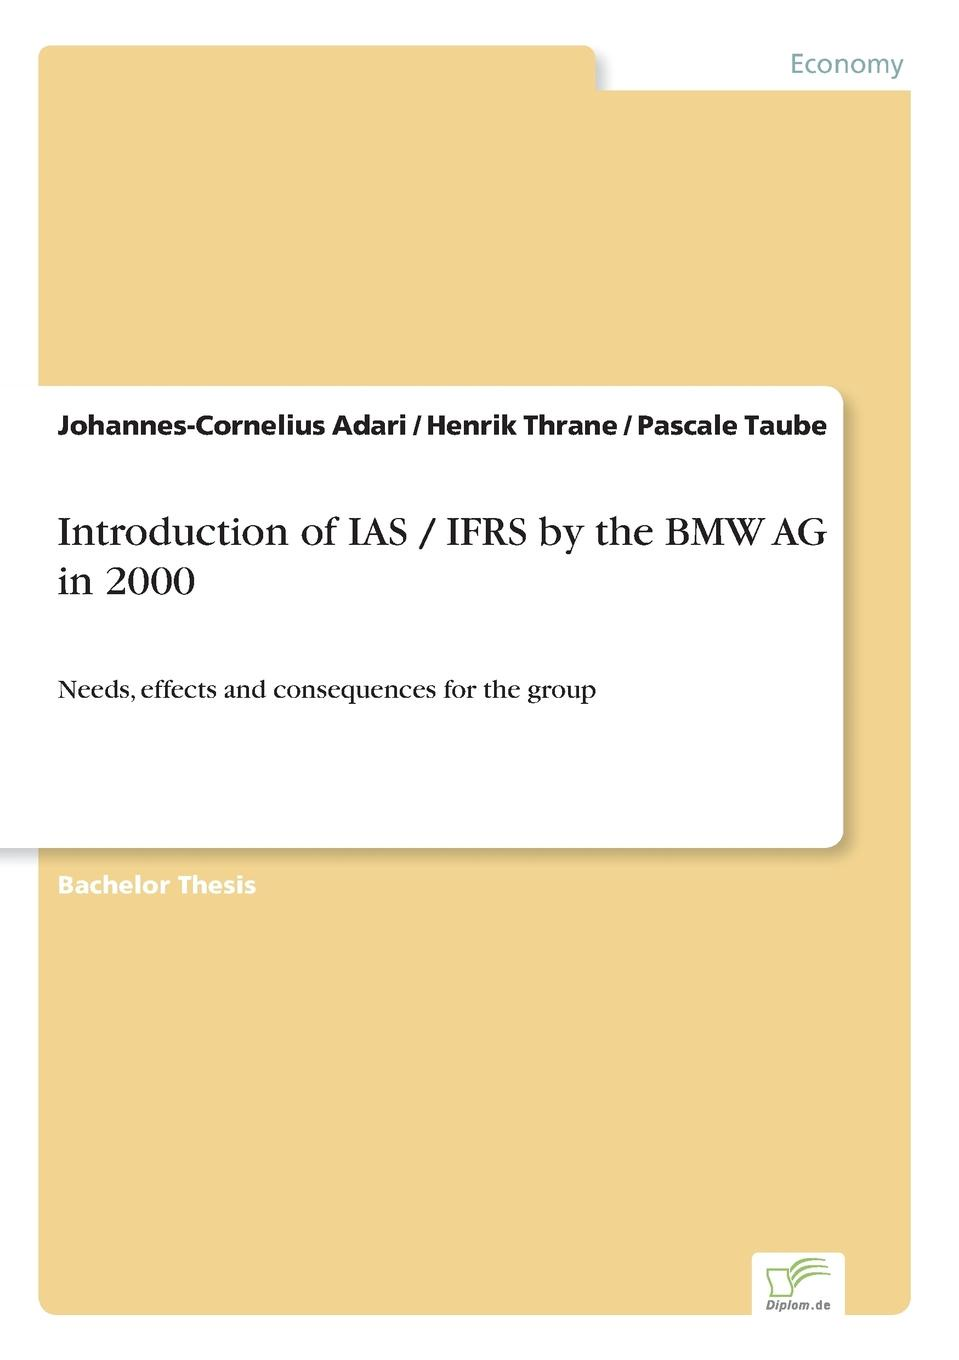 Johannes-Cornelius Adari, Henrik Thrane, Pascale Taube Introduction of IAS / IFRS by the BMW AG in 2000 marie ditommaso wiley not for profit gaap 2016 interpretation and application of generally accepted accounting principles